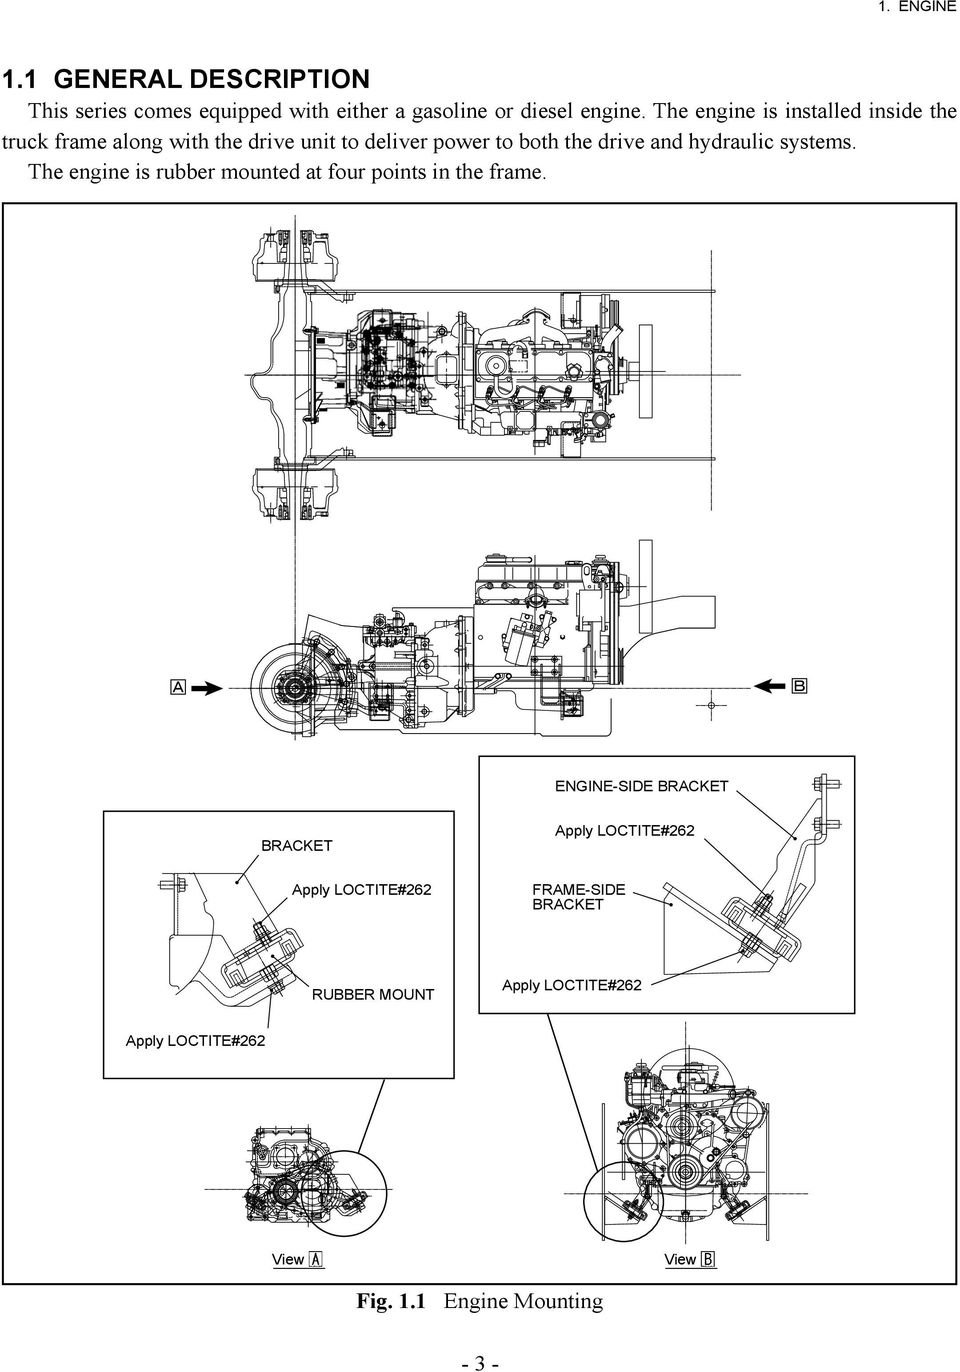 Service Manual Forklift Truck Tcm Corporation Fhd18t3 Fhg18t3 Turn Signal Wiring Diagram Hydraulic Systems The Engine Is Rubber Mounted At Four Points In Frame